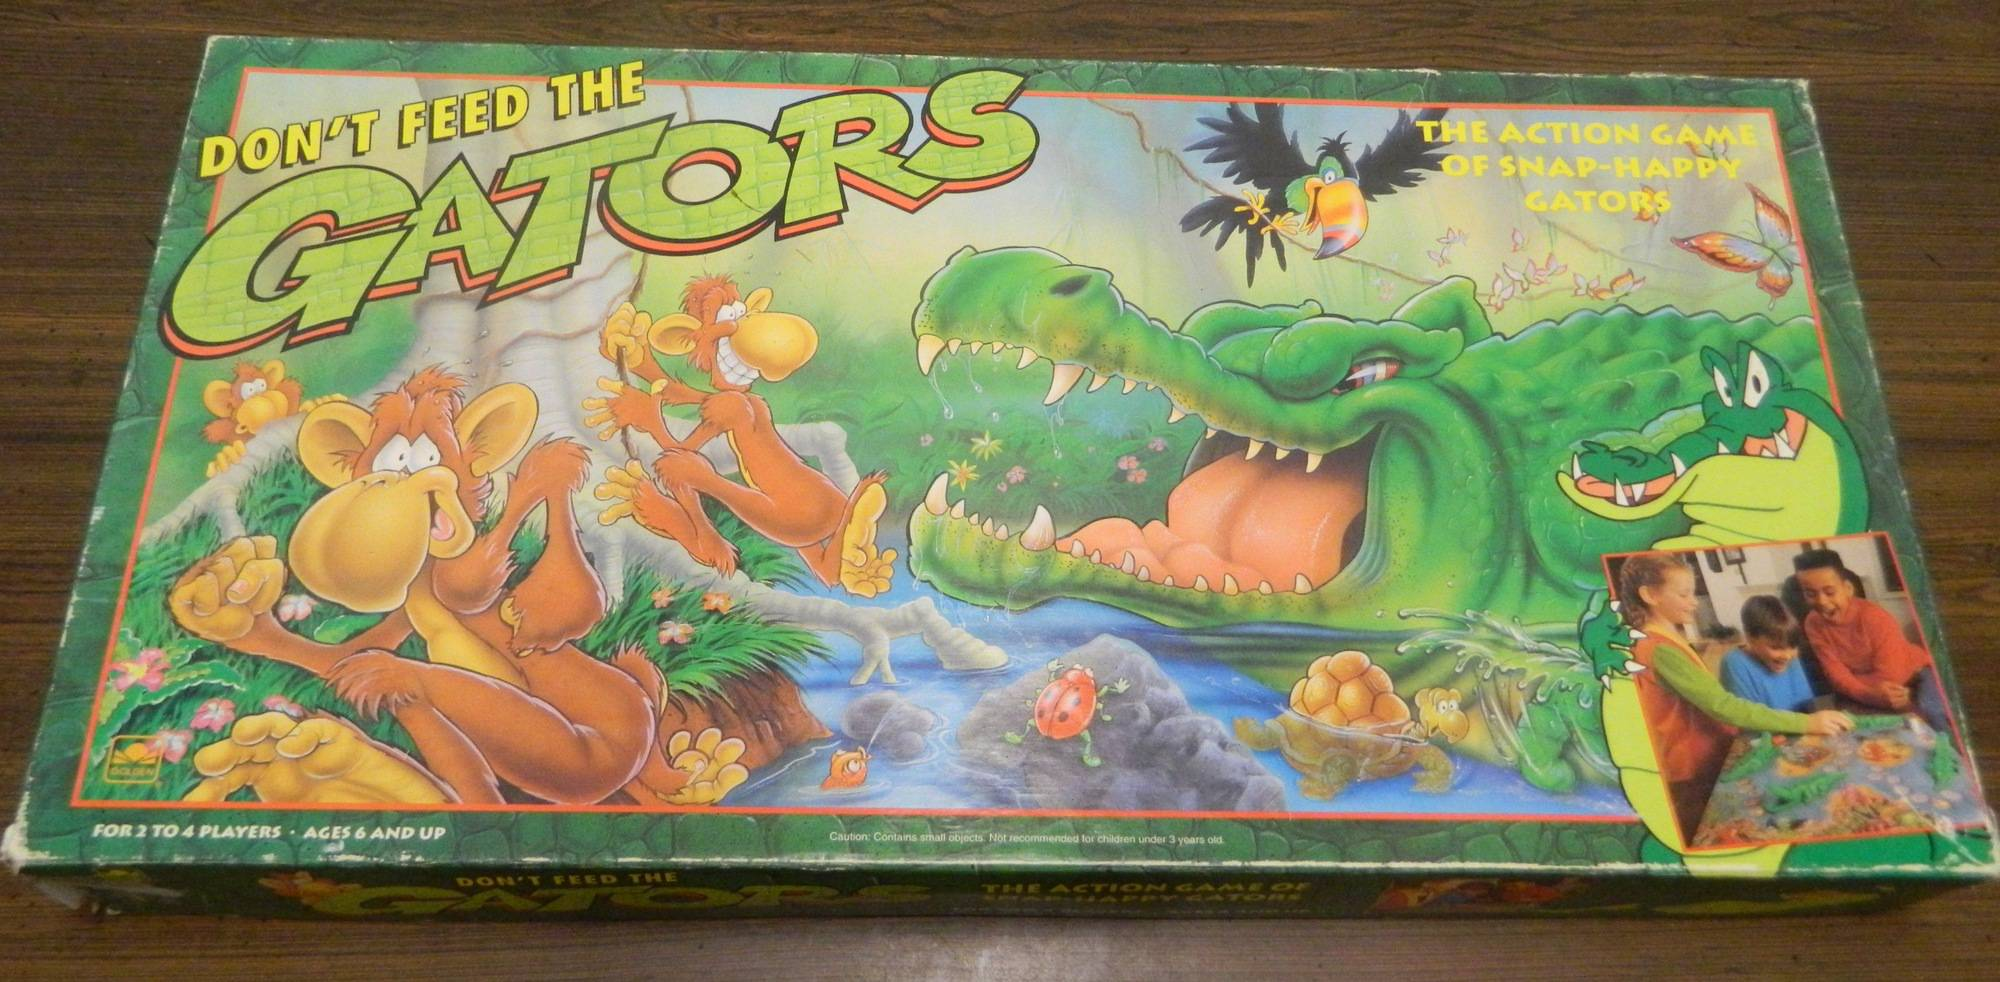 Box for Don't Feed the Gators